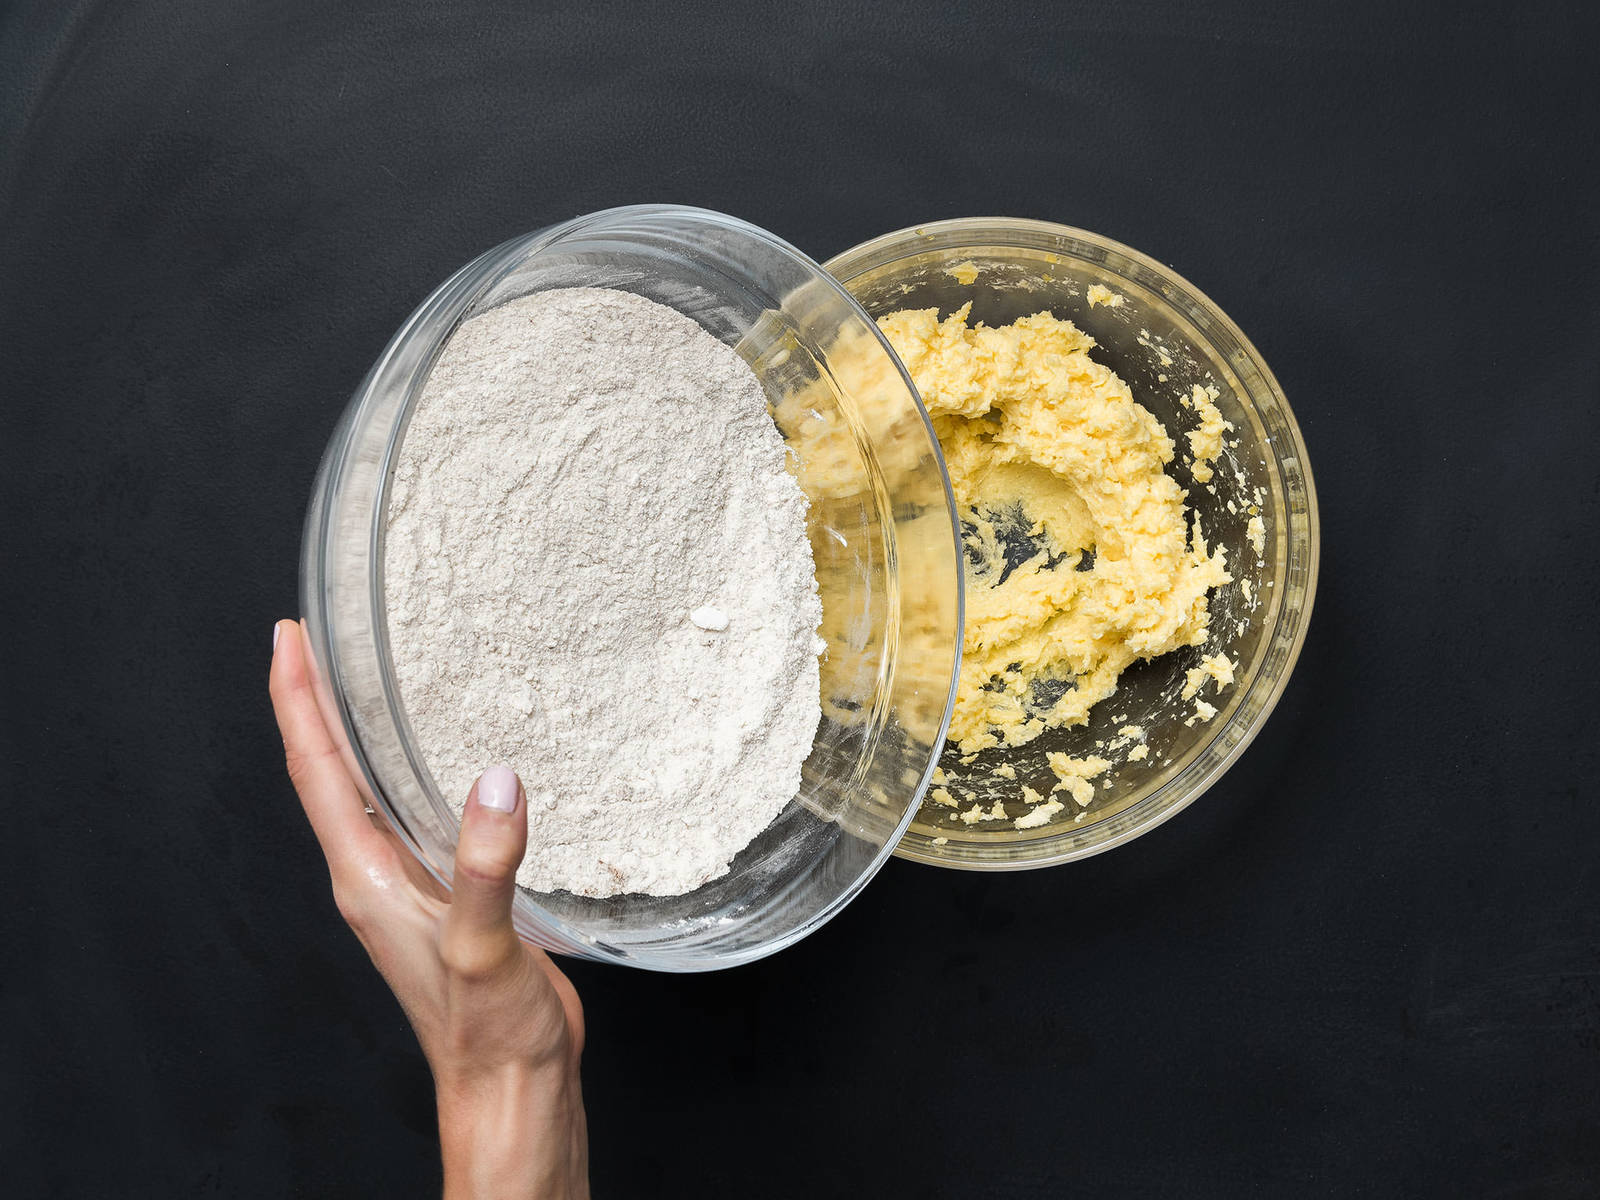 Preheat oven to 180°C/350°F. Beat together soft butter, sugar, vanilla sugar, salt, egg yolks, and vanilla extract in a bowl. In another bowl, mix together flour, starch, and ground almonds and add alternately to the butter-egg mixture, until a smooth dough forms.